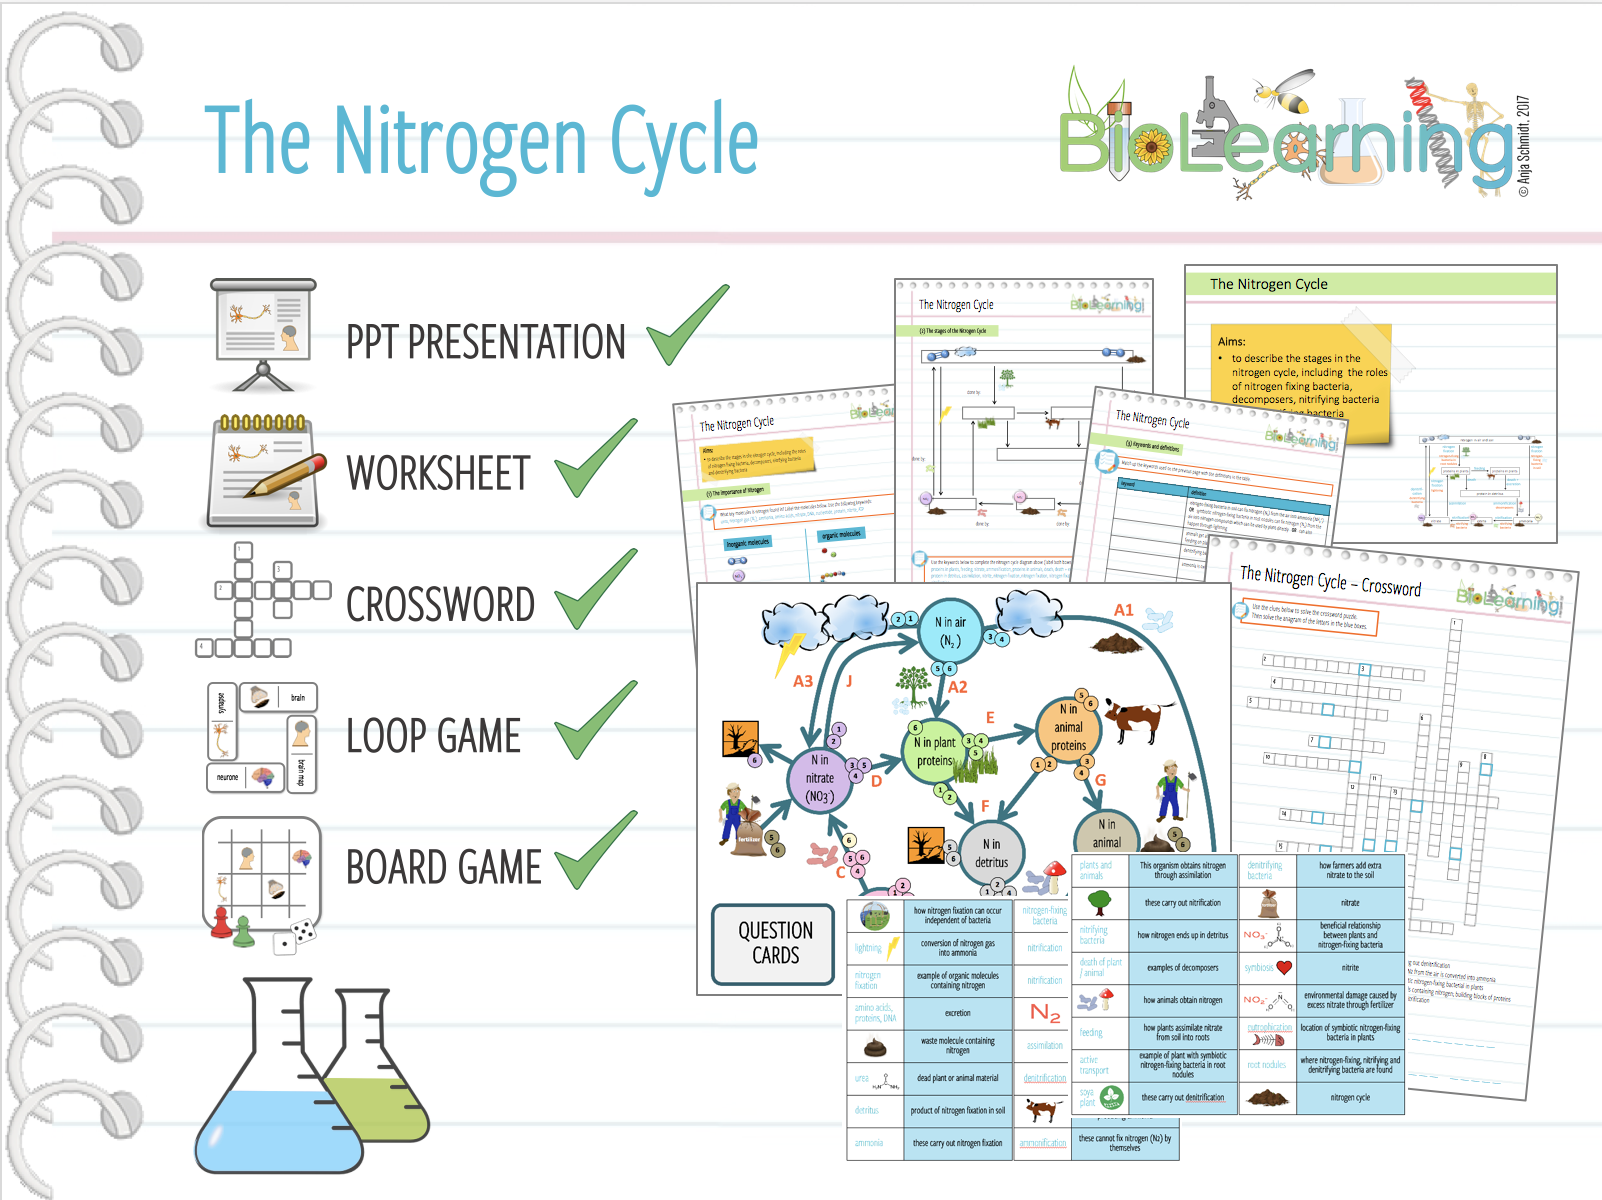 5x Nitrogen Cycle - Powerpoint PPT, Worksheet,  Loop Game, Crossword and Board Game (KS4)